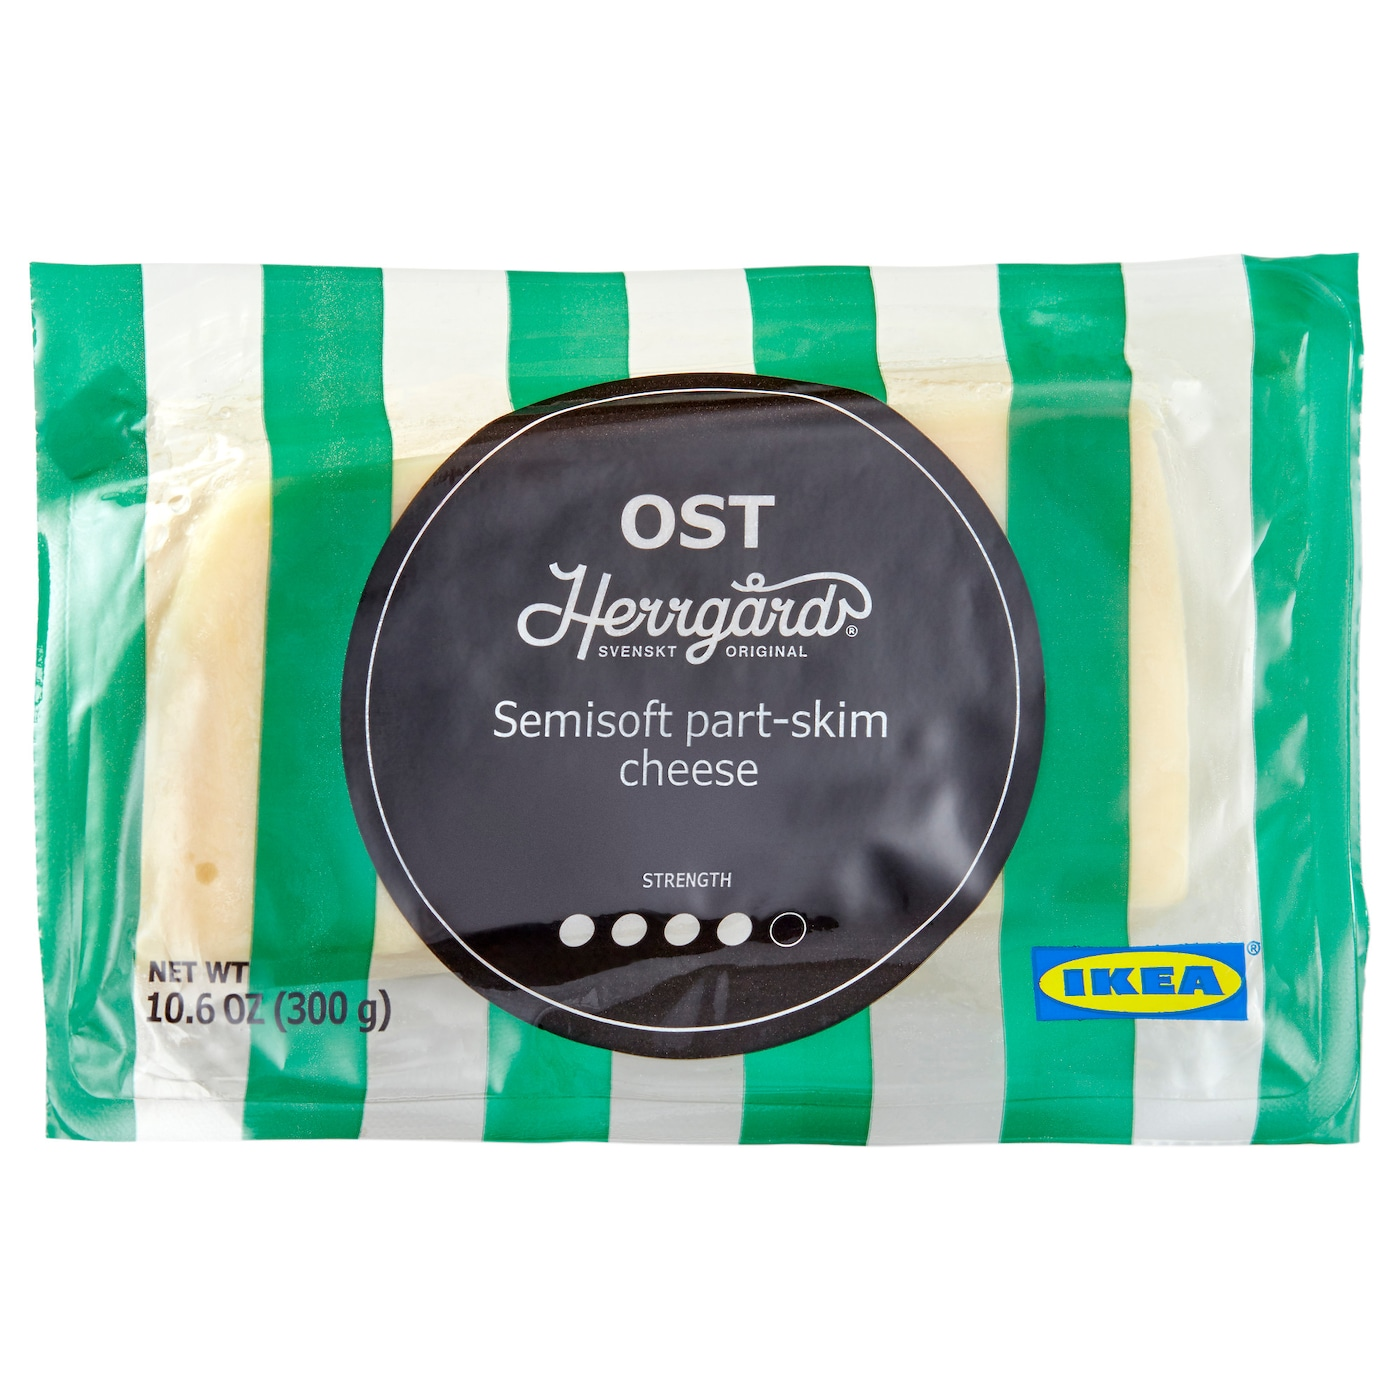 IKEA OST HERRGÅRD® semi-hard cheese